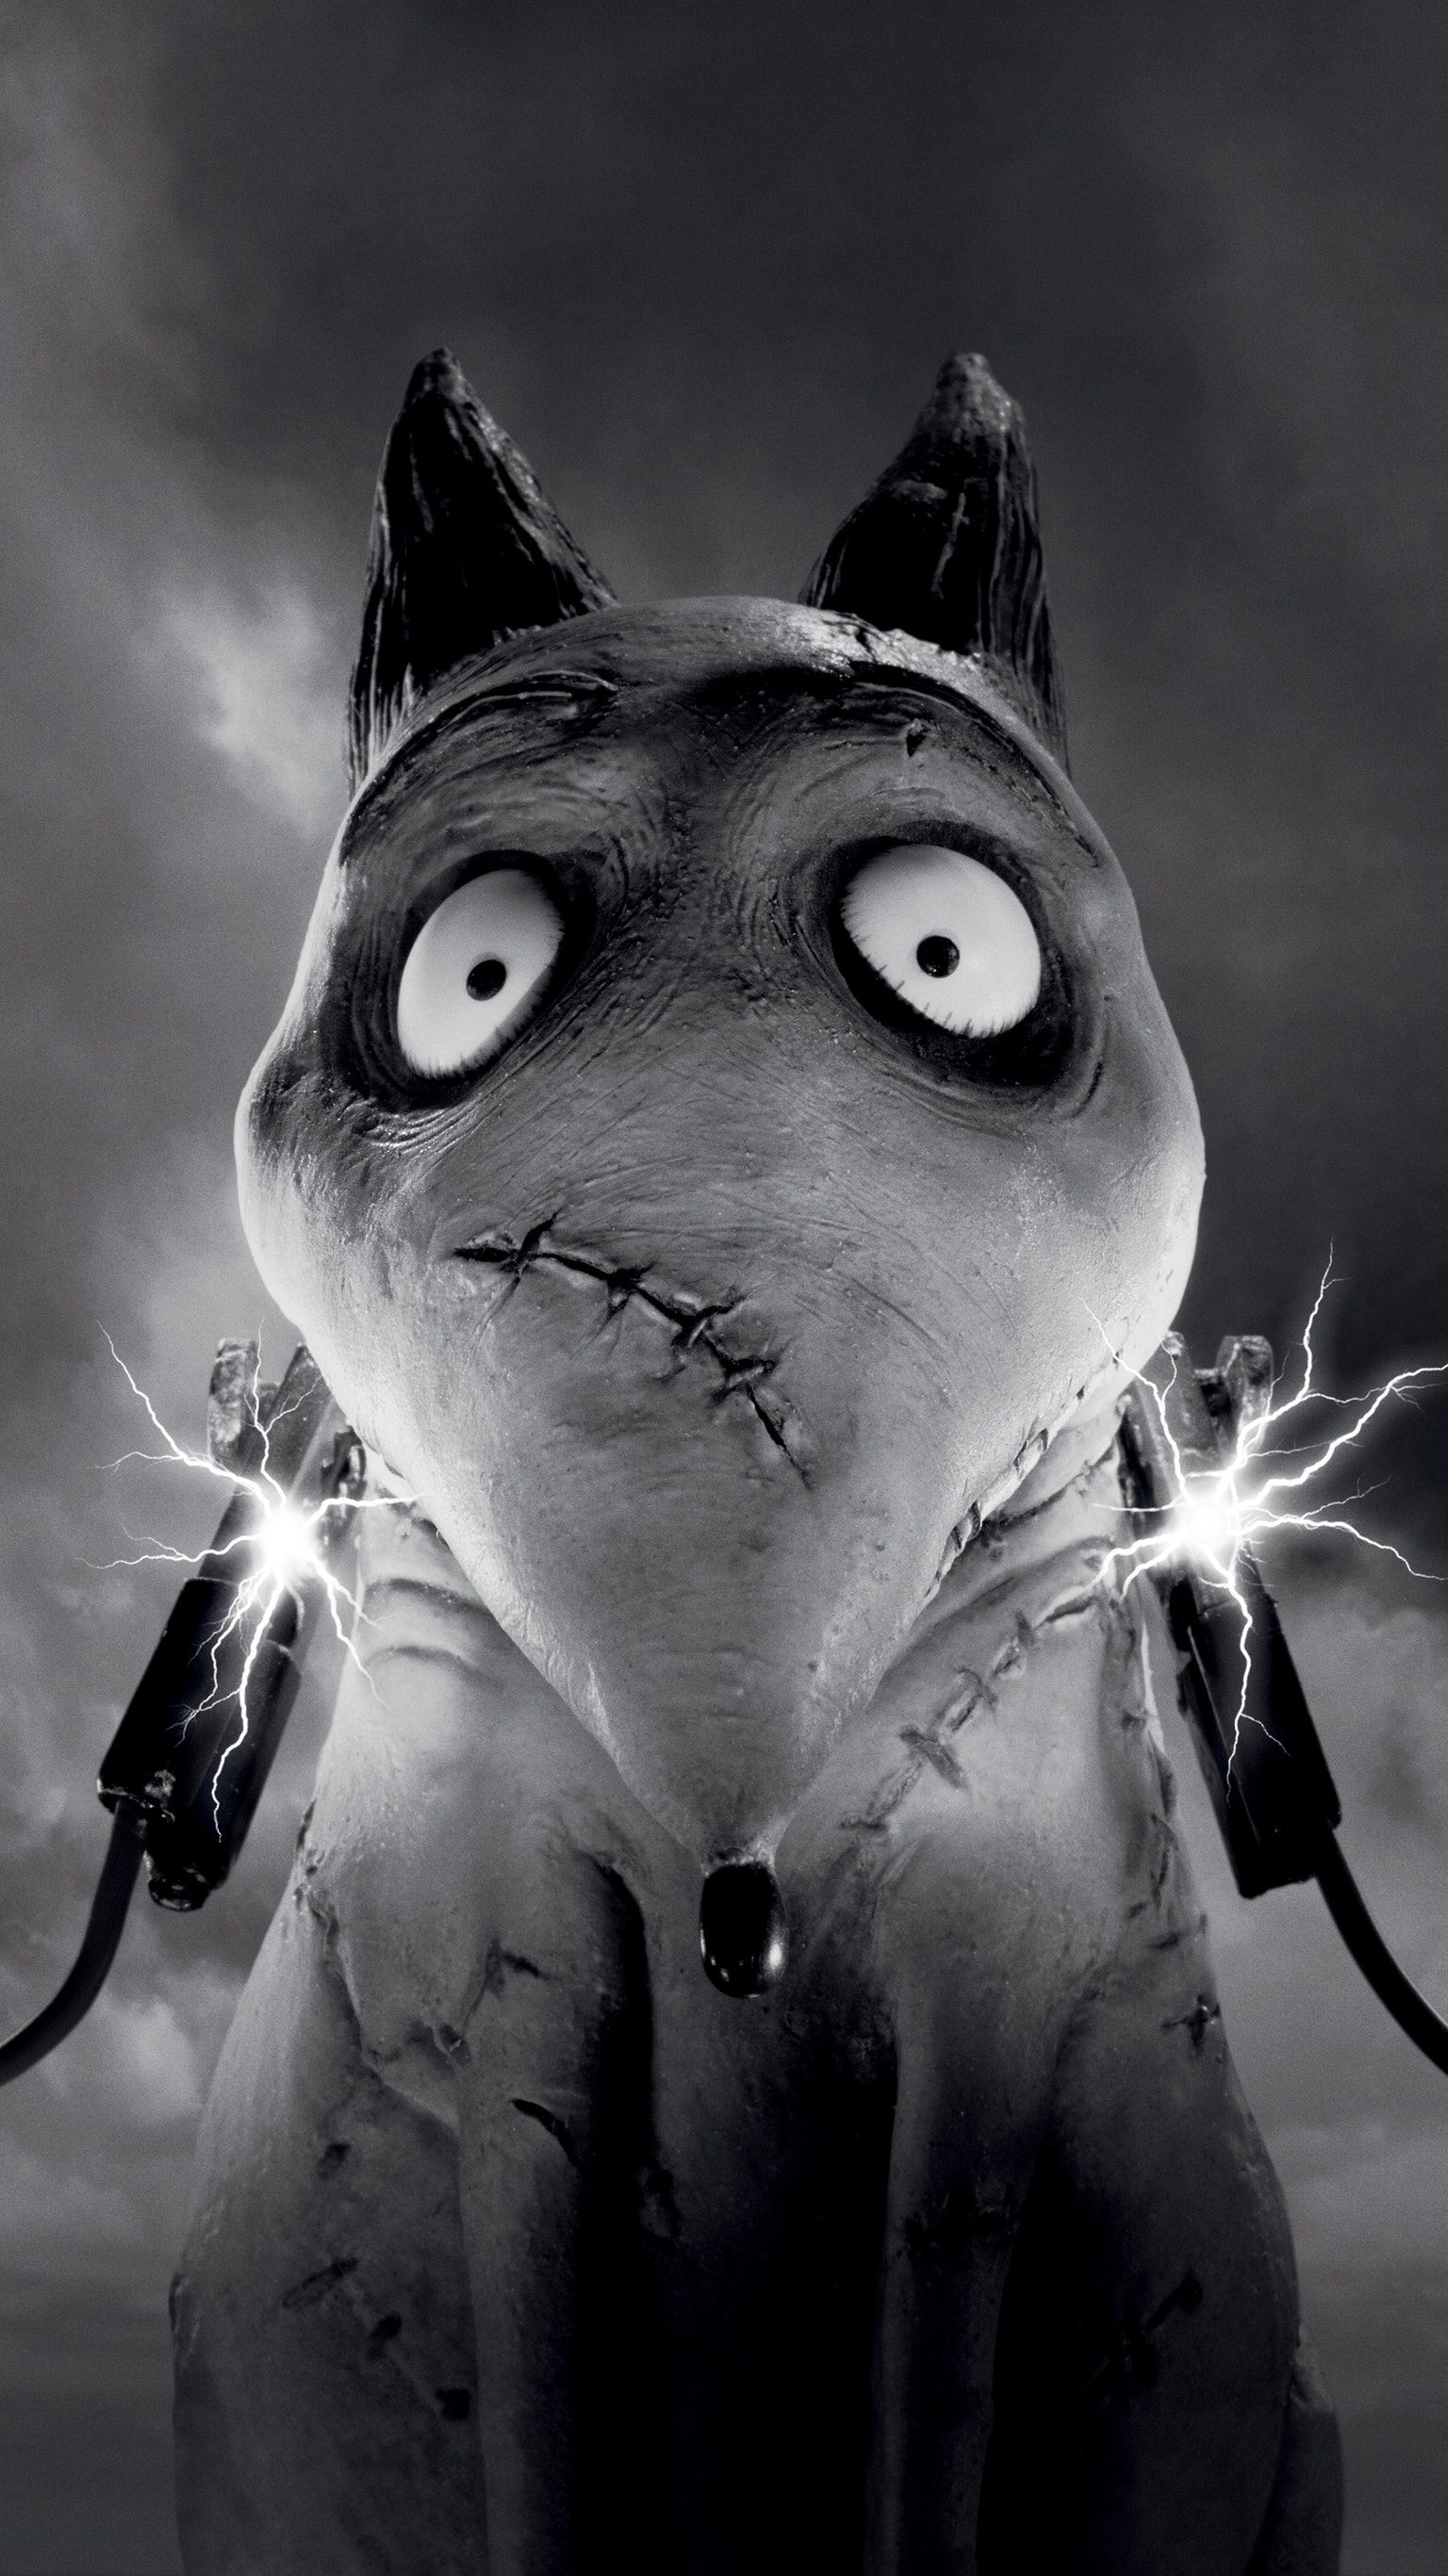 Frankenweenie 2012 Phone Wallpaper Moviemania Tim Burton Stop Motion Animated Movie Posters